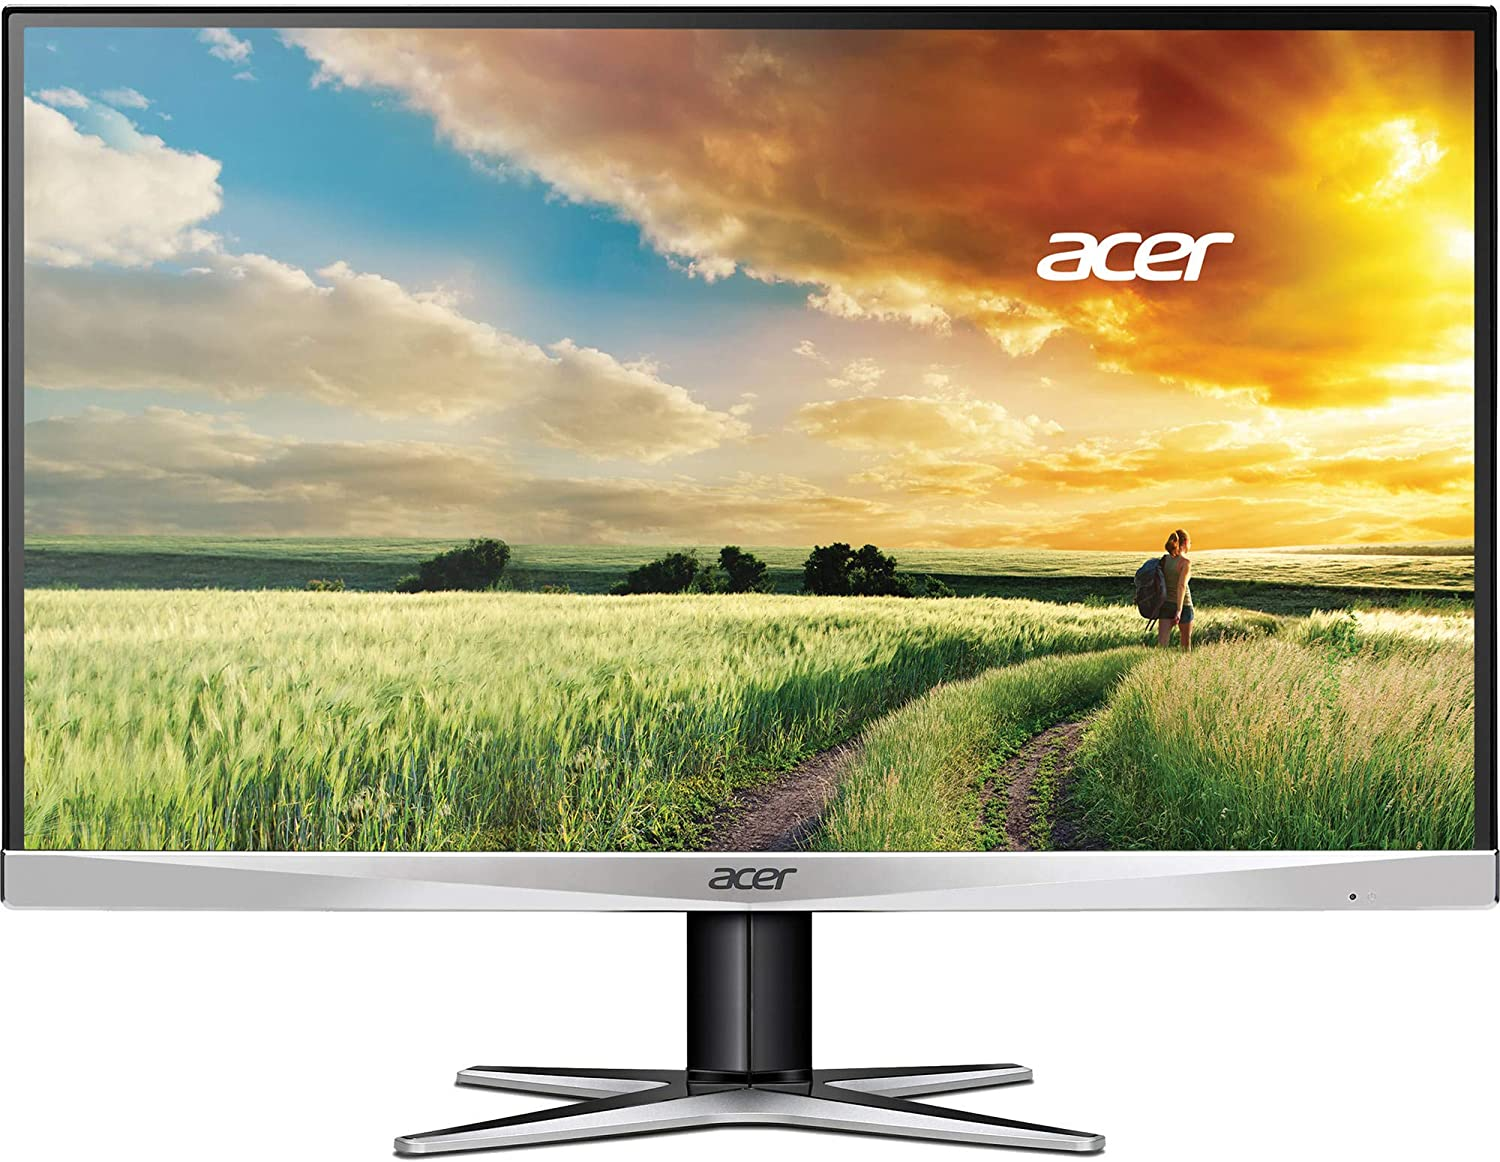 Acer G7 -G257HU smidpx - 25in Monitor (2560 x 1440) 4ms - 350 Nit (Renewed)